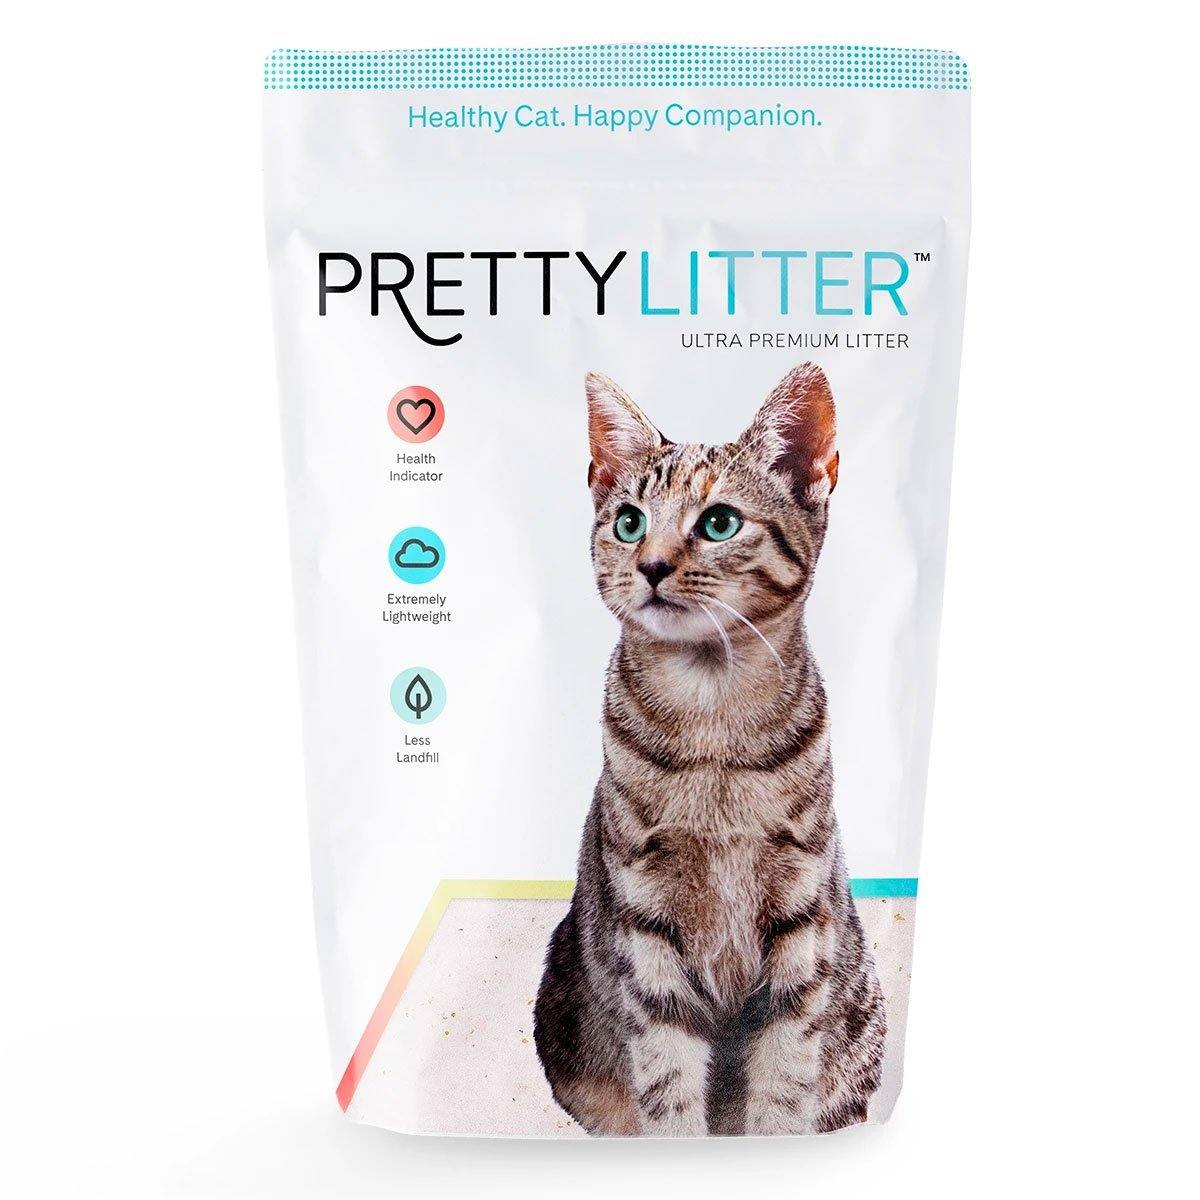 3 Months Supply of PrettyLitter for Three Cats